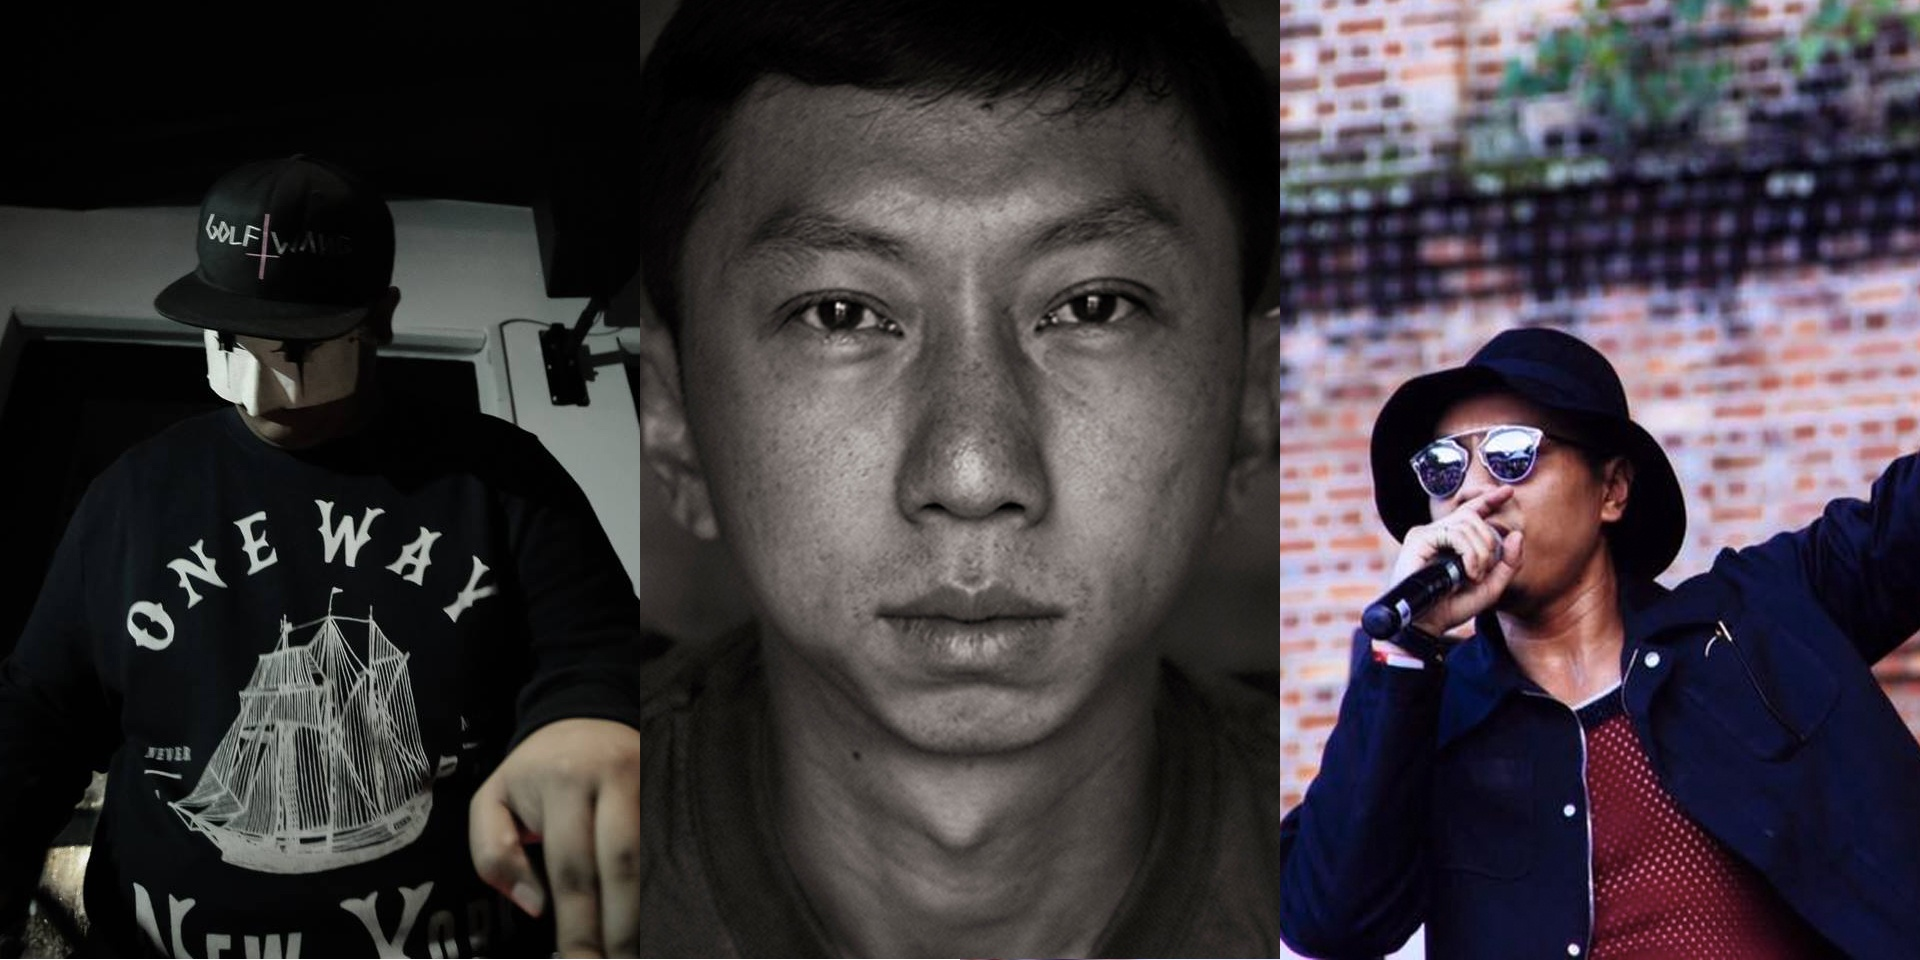 Laneway Festival adds fourth stage with Syndicate